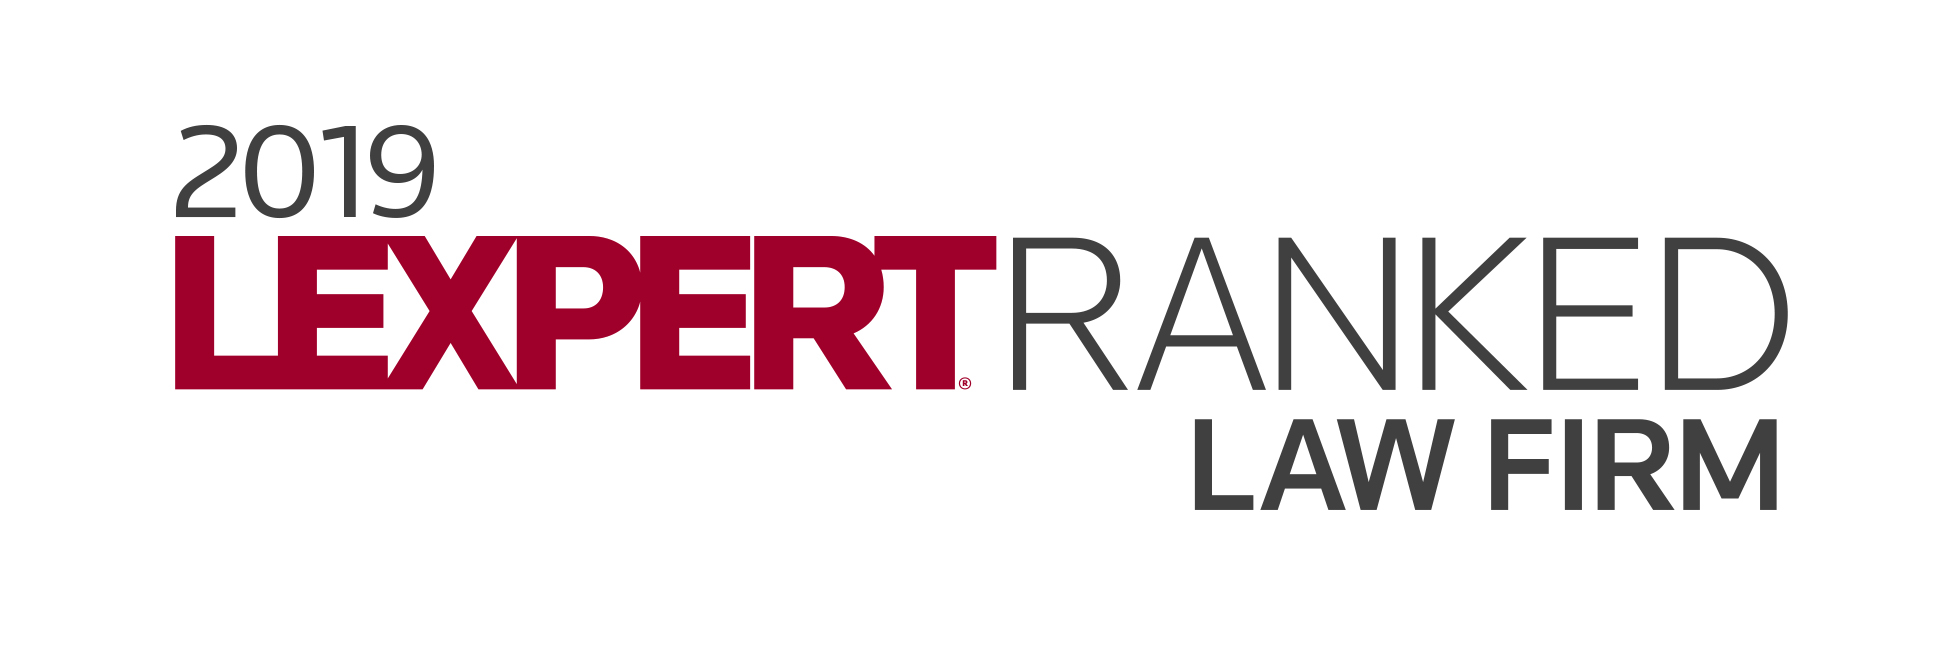 Lexpert Directory 2019 Ranked Law Firm Logo